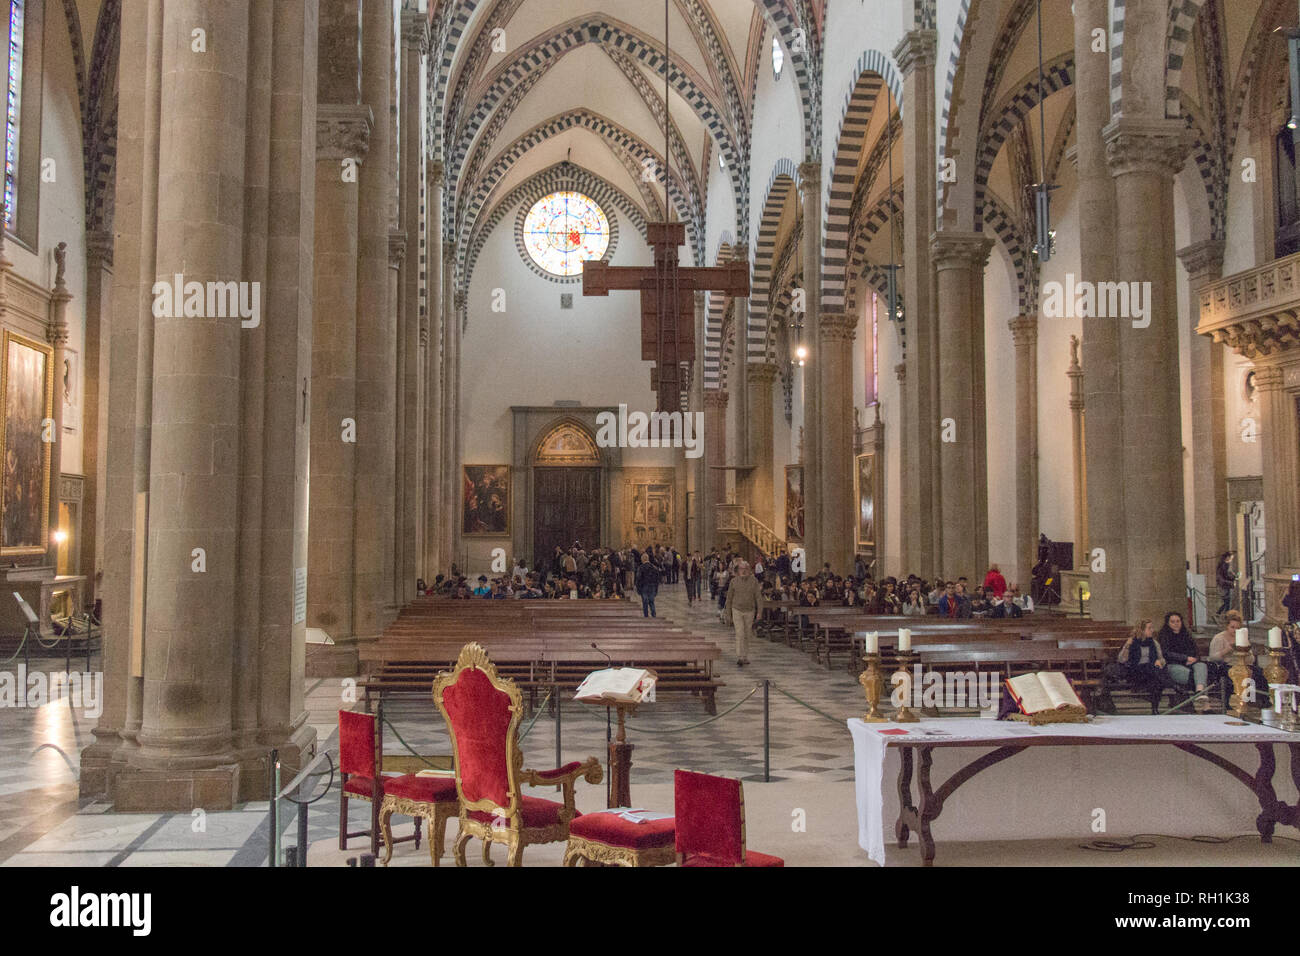 Italy, Florence - April 02 2017: the view of the Nave with the Crucifix of Giotto inside of Santa Maria Novella Church on April 02 2017, Tuscany. Stock Photo